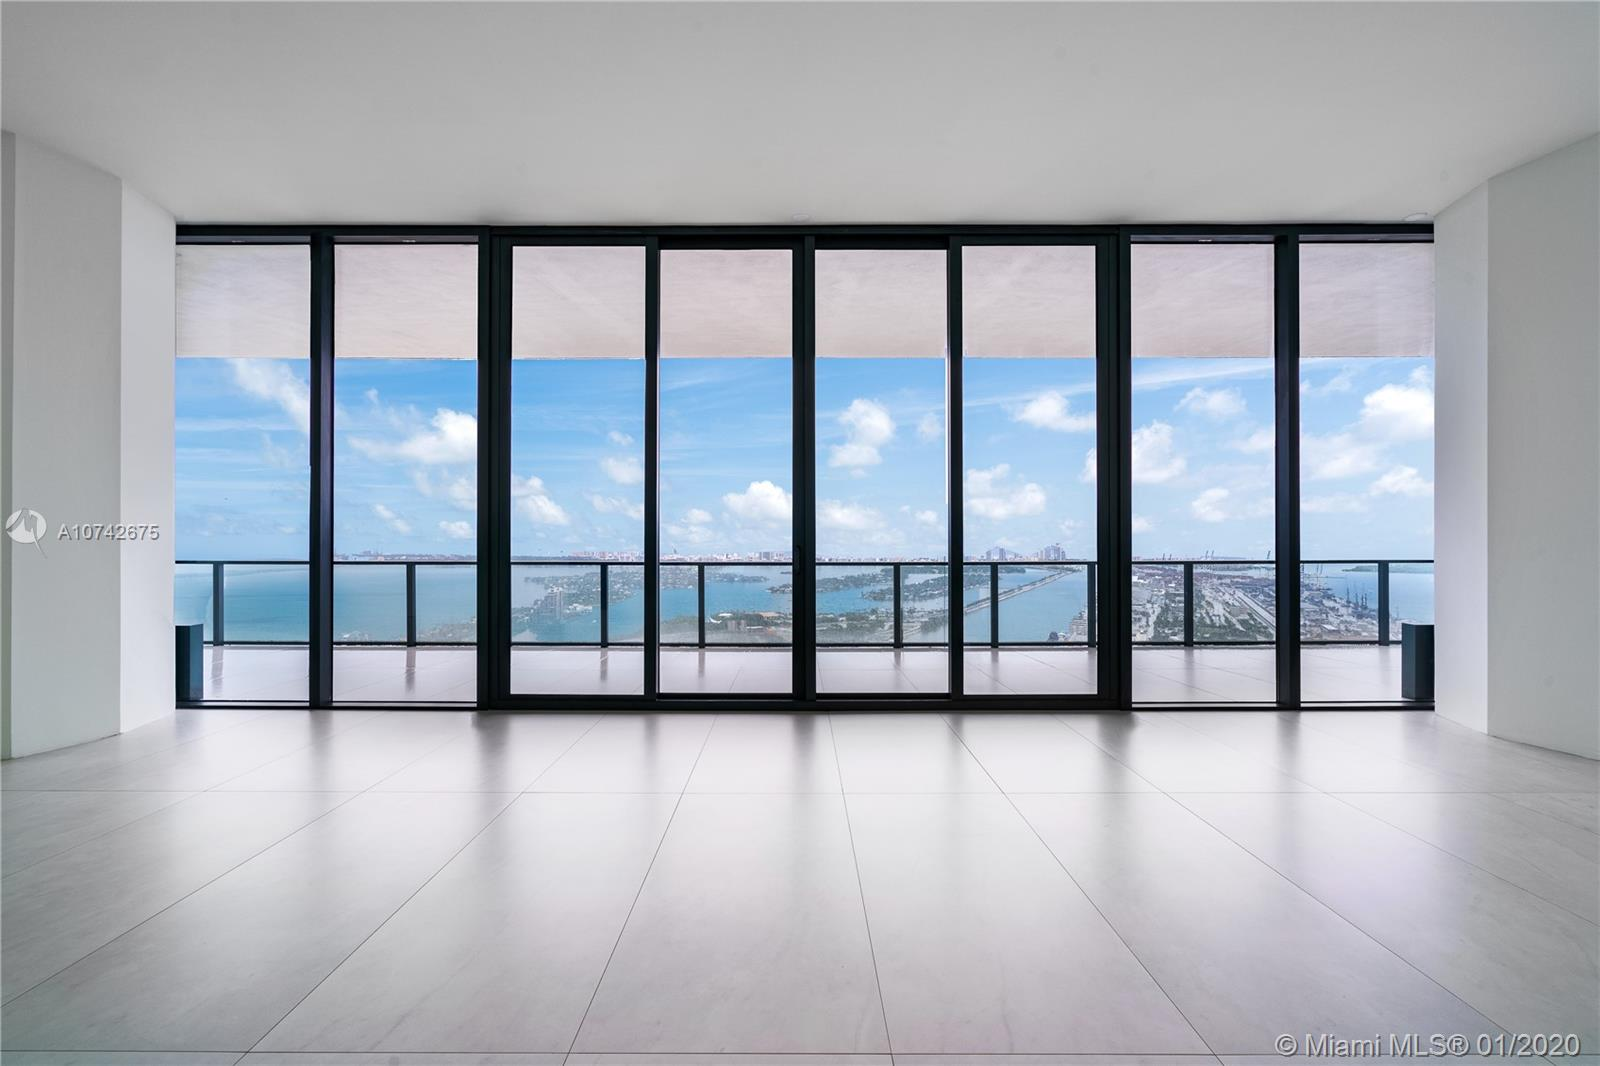 Main Property Image For 1000 Biscayne Blvd #5701